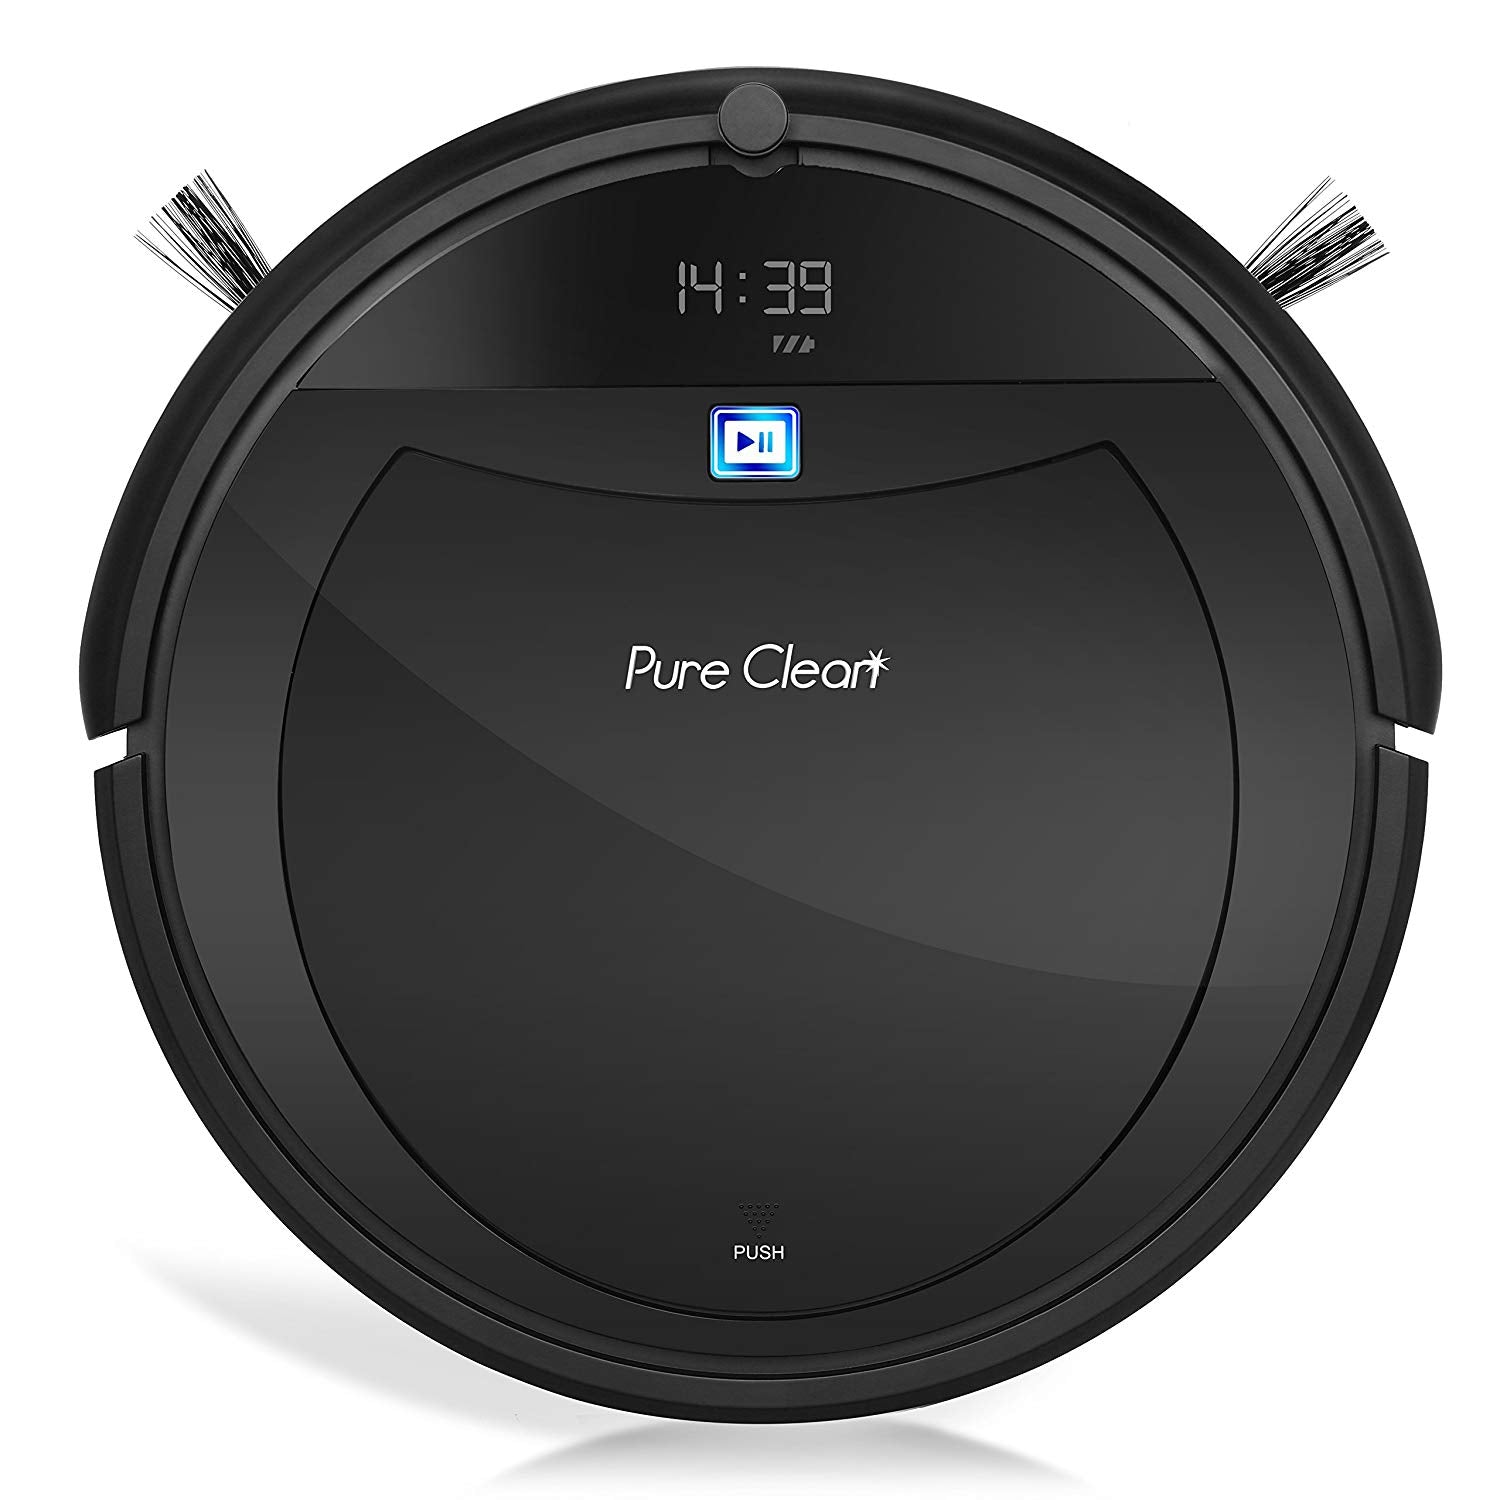 Automatic Programmable Robot Vacuum Cleaner - Scheduled Activation Auto Charge Dock,HEPA Pet Hair and Allergies Friendly